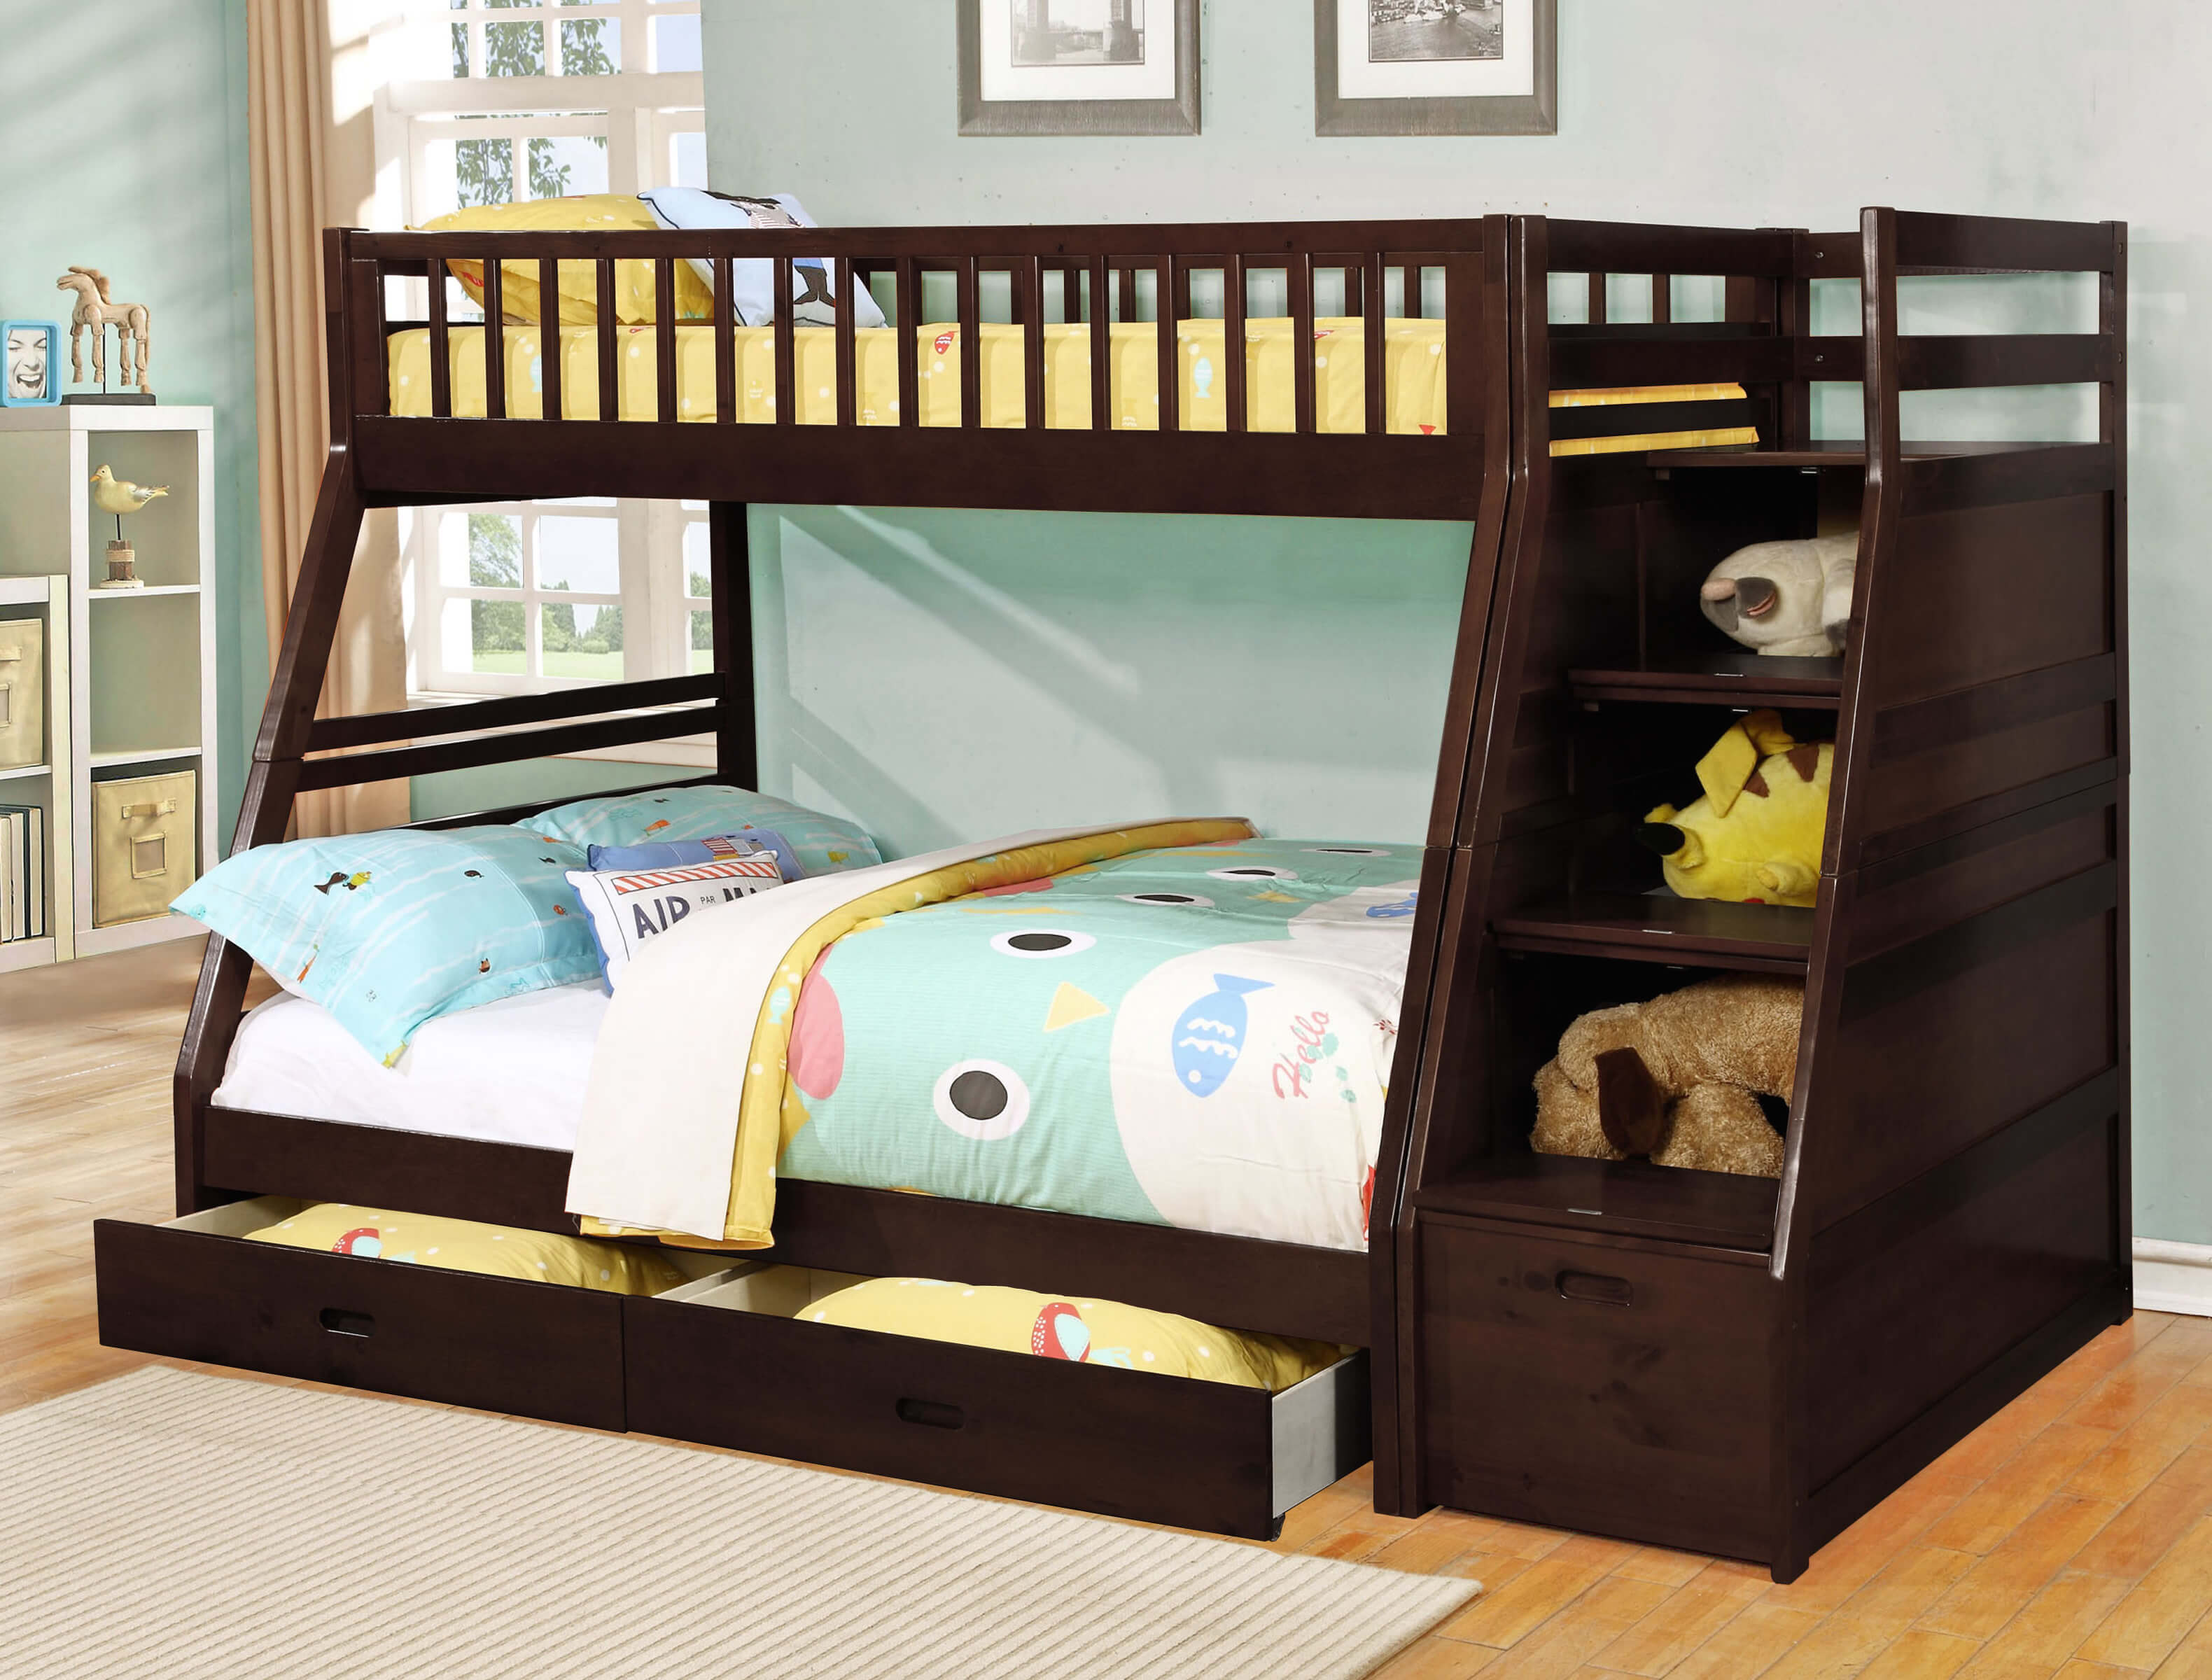 24 bunk beds with steps kids love these